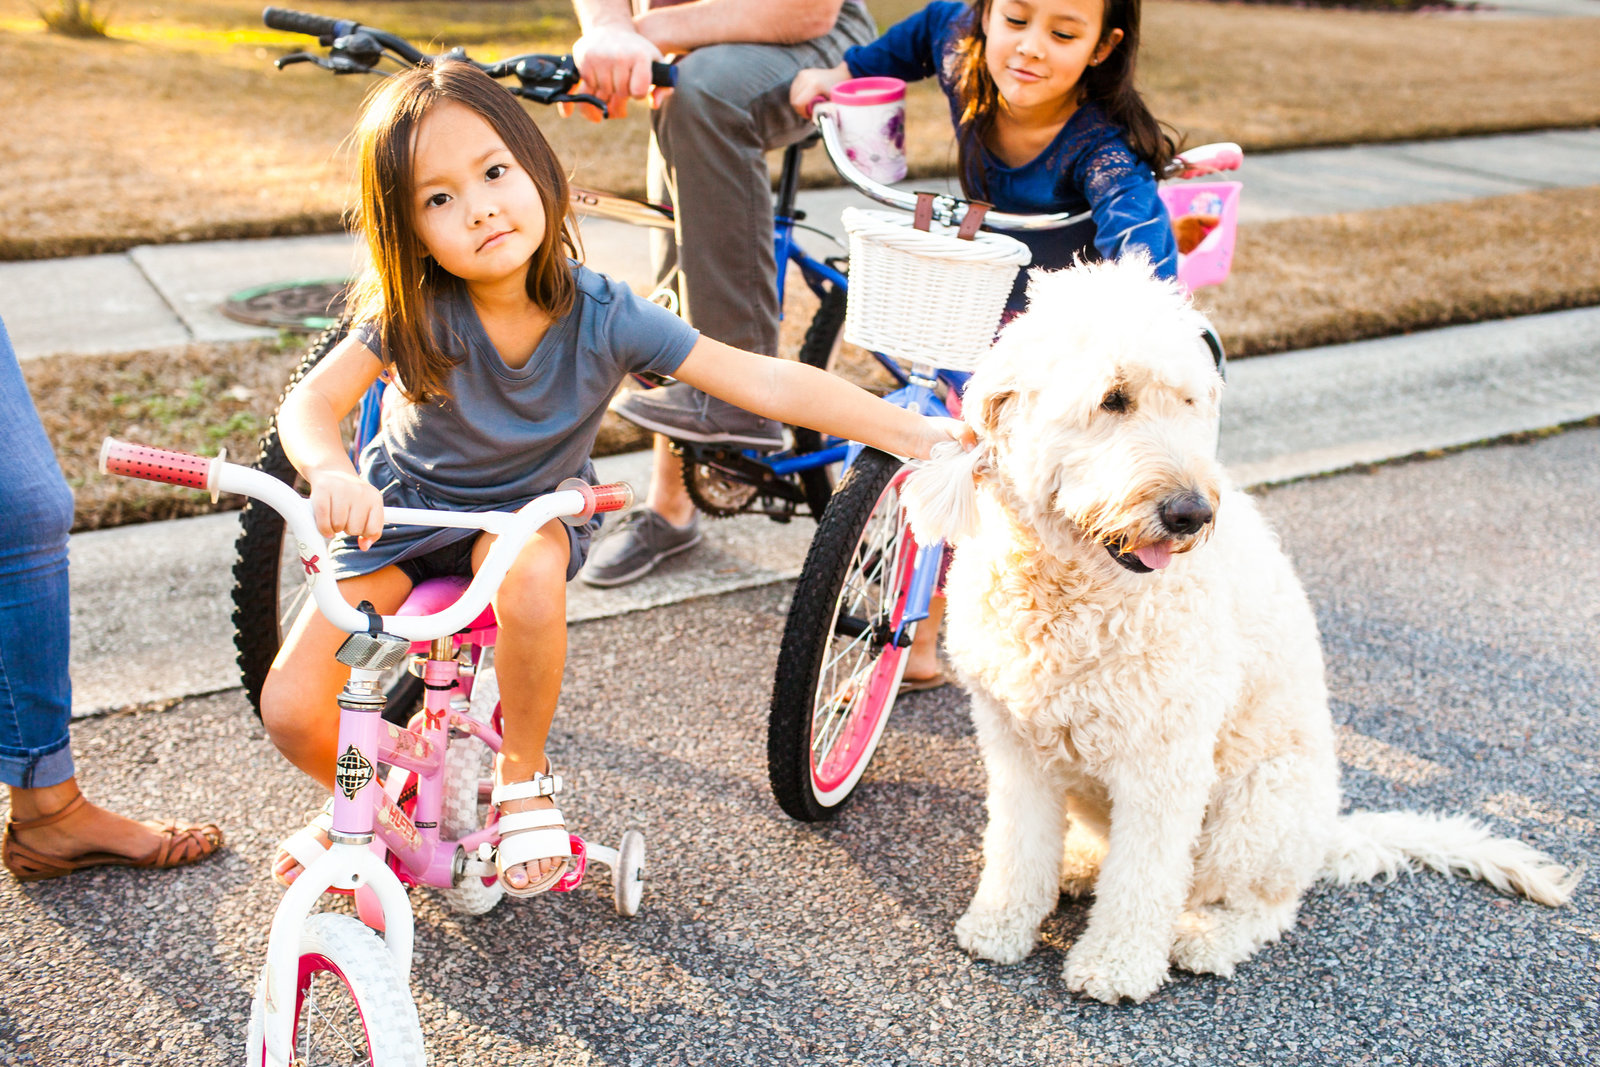 Family riding bikes and playing with dogs at sunset